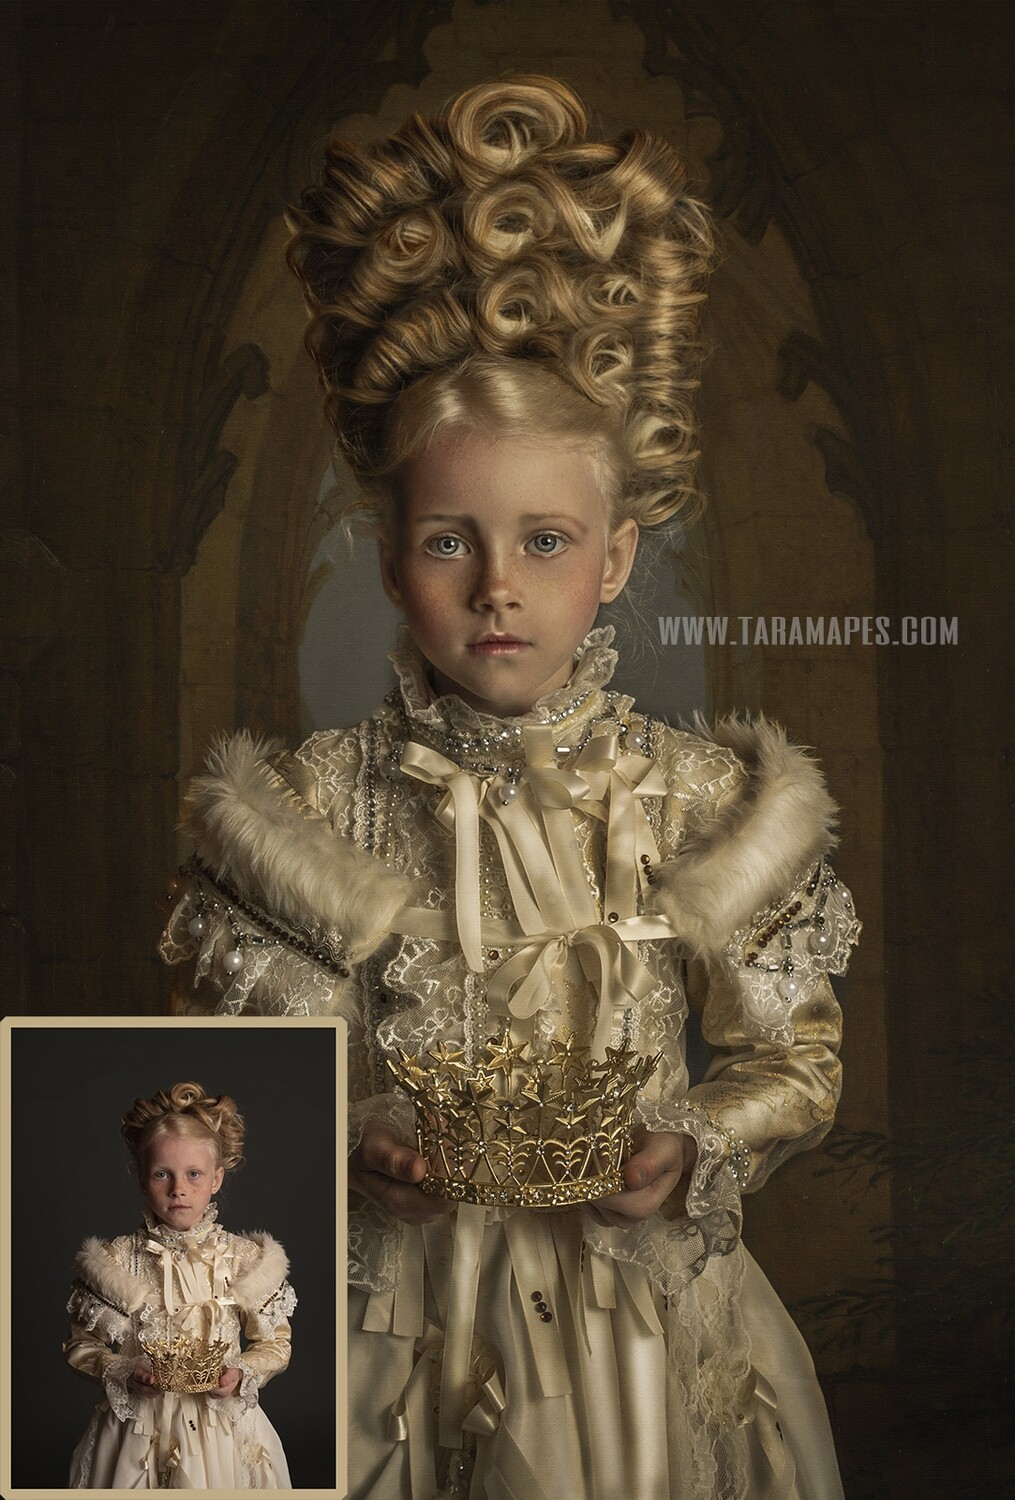 The Princess Painterly Editing + Compositing Photoshop Tutorial with STARTER PACK- Fine Art Tutorial by Tara Mapes